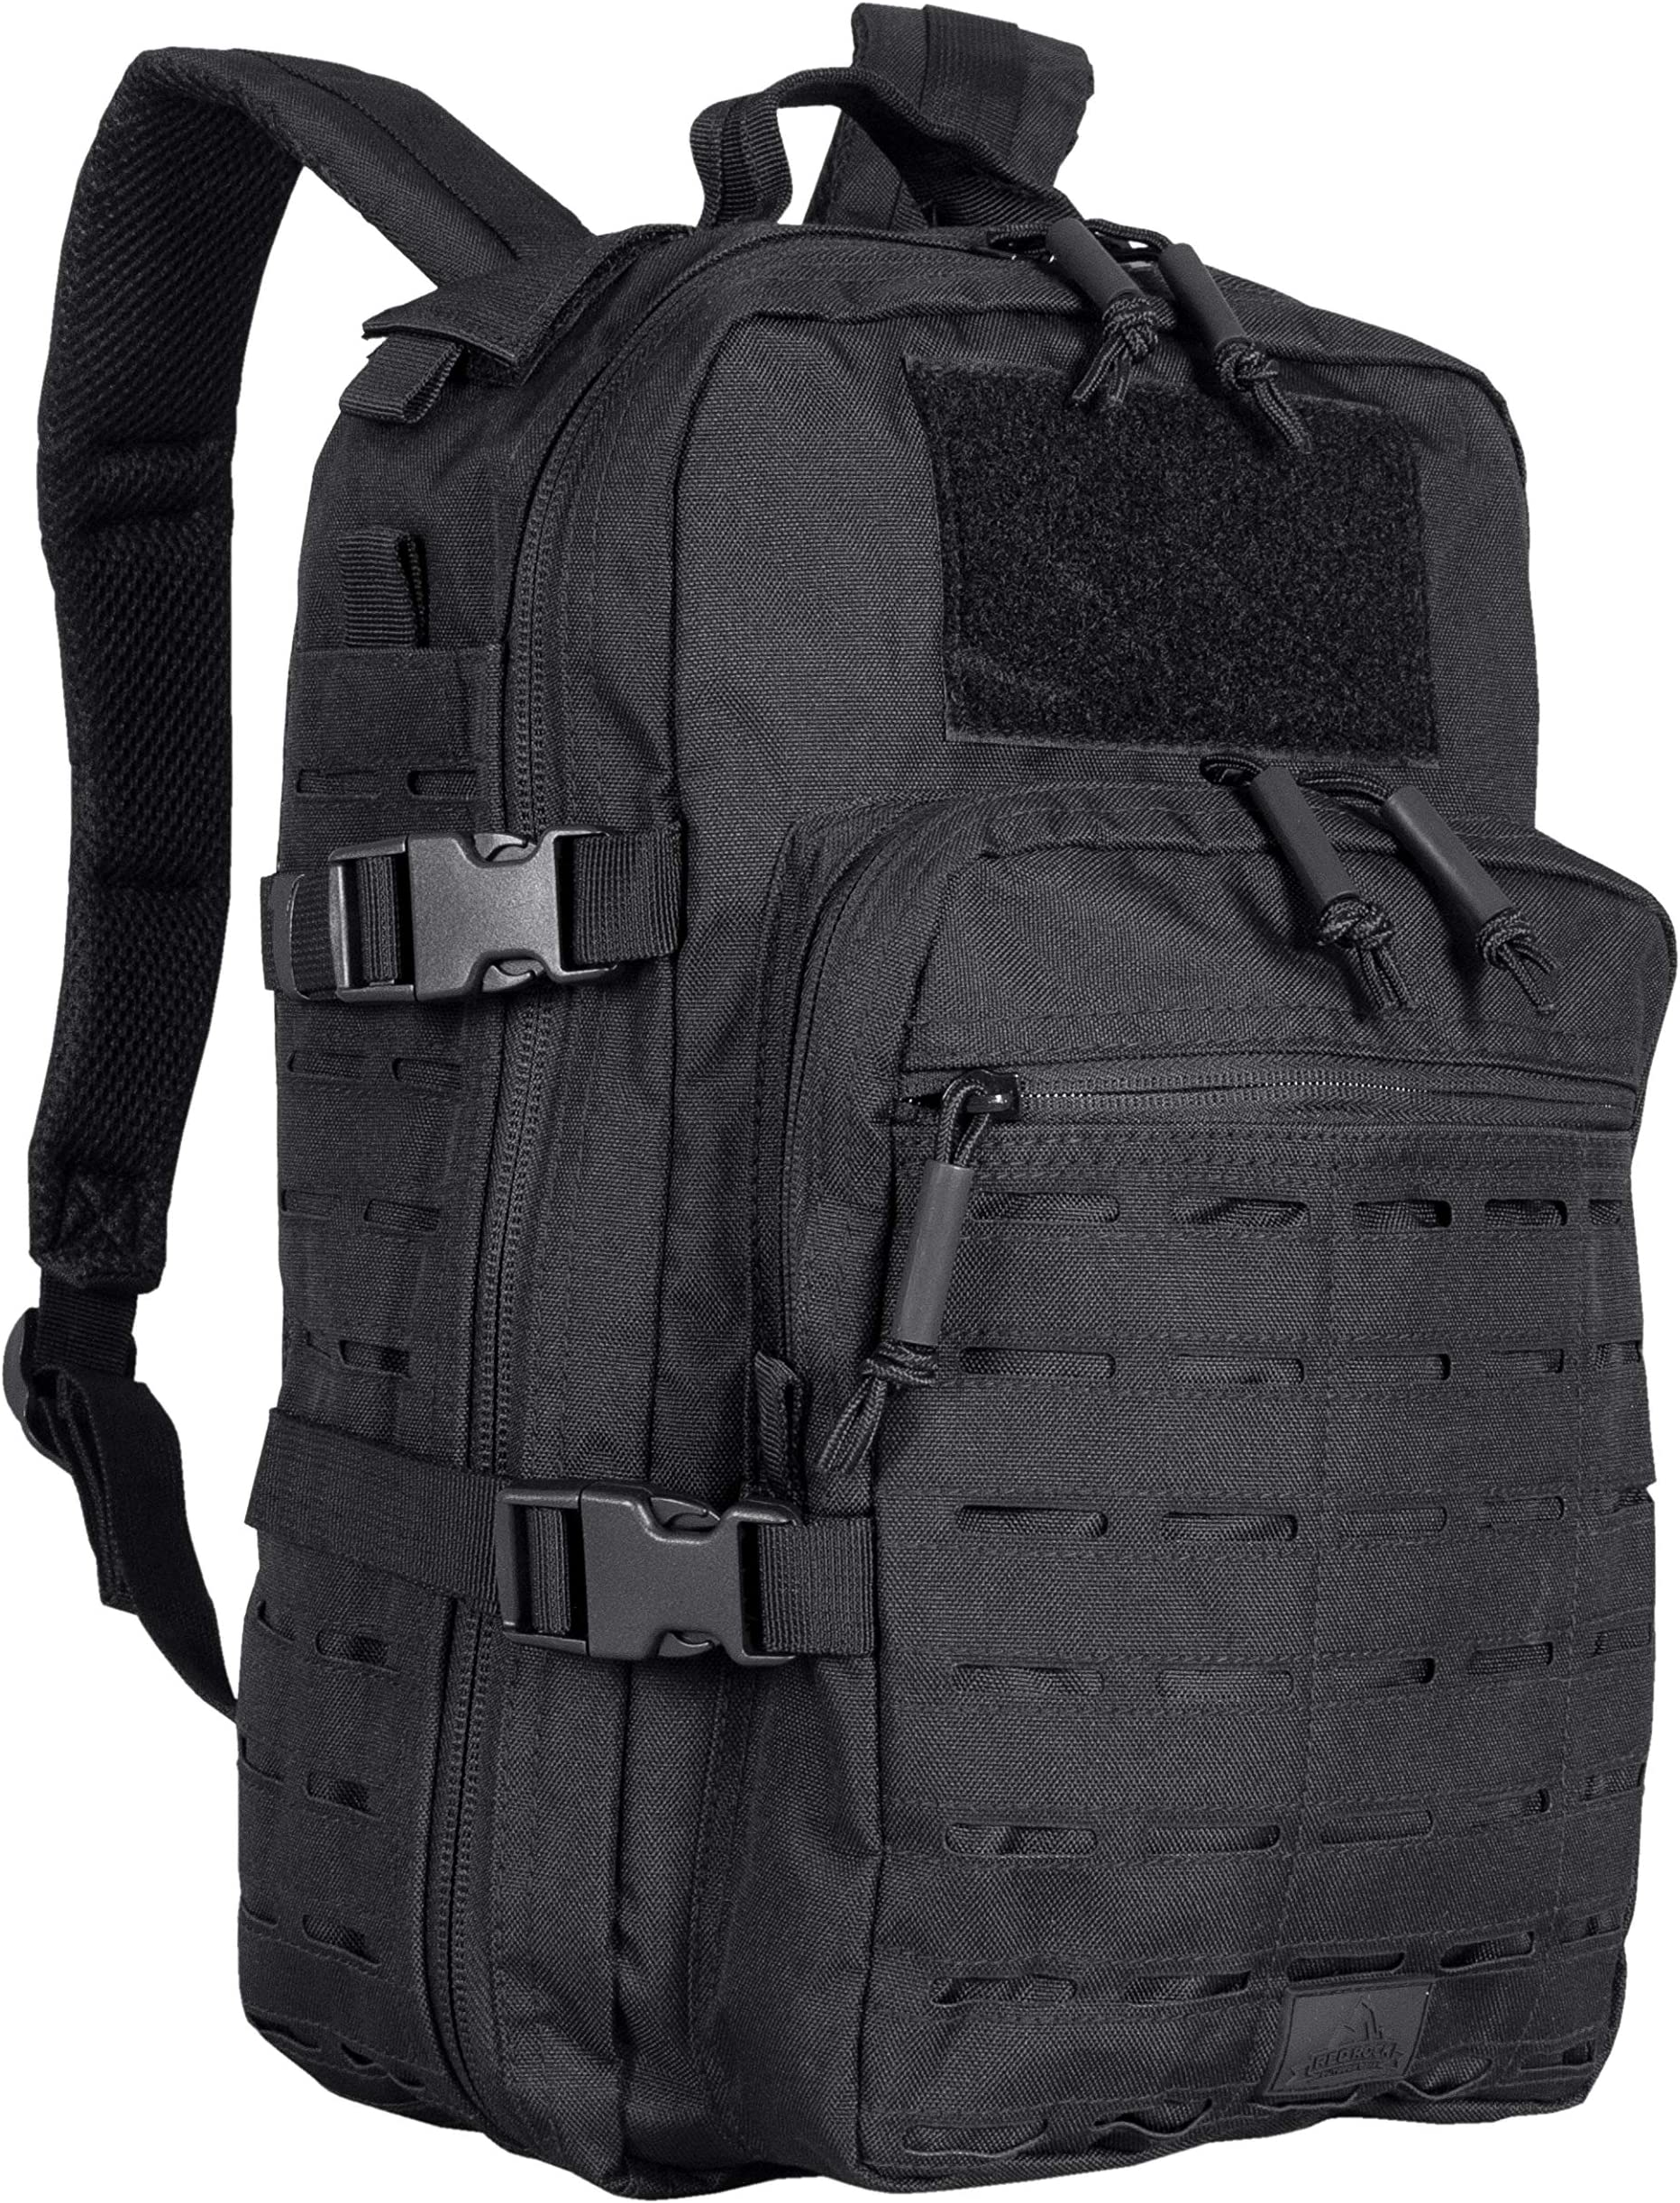 Red Rock Outdoor Gear - Transporter Day Pack